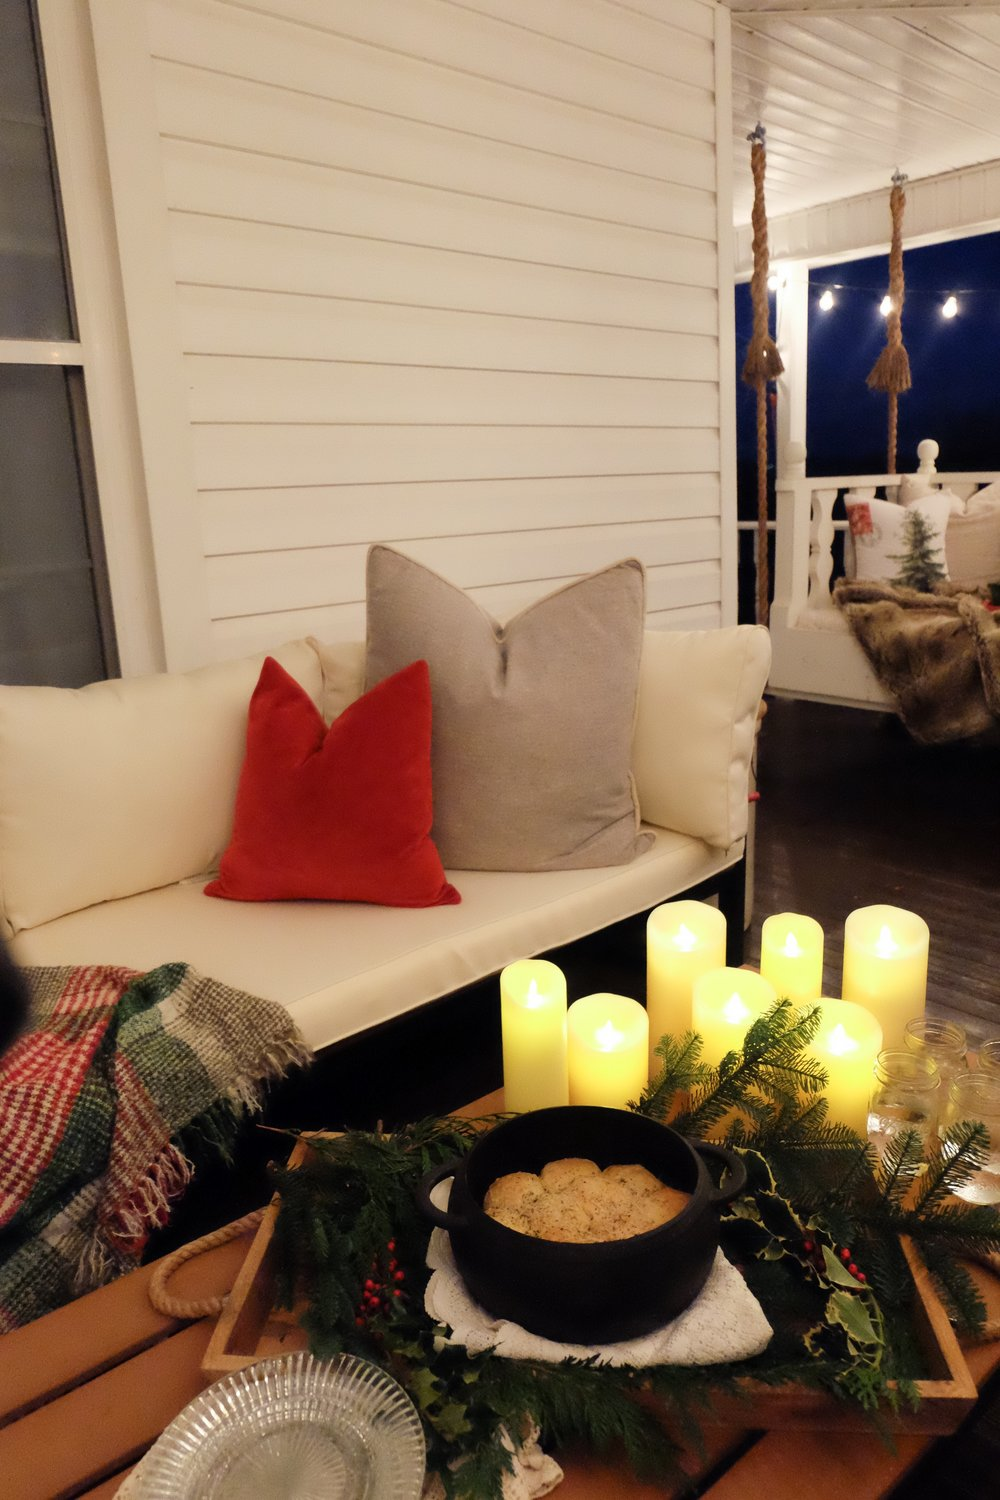 I got the patio set from @walkeredisonfurniture, gray pillows from @schoolhouseelectric and red velvet pillow & gorgeous throw from @crateandbarrel!  I usually have real candles but these really set the tone and have a nice glow!